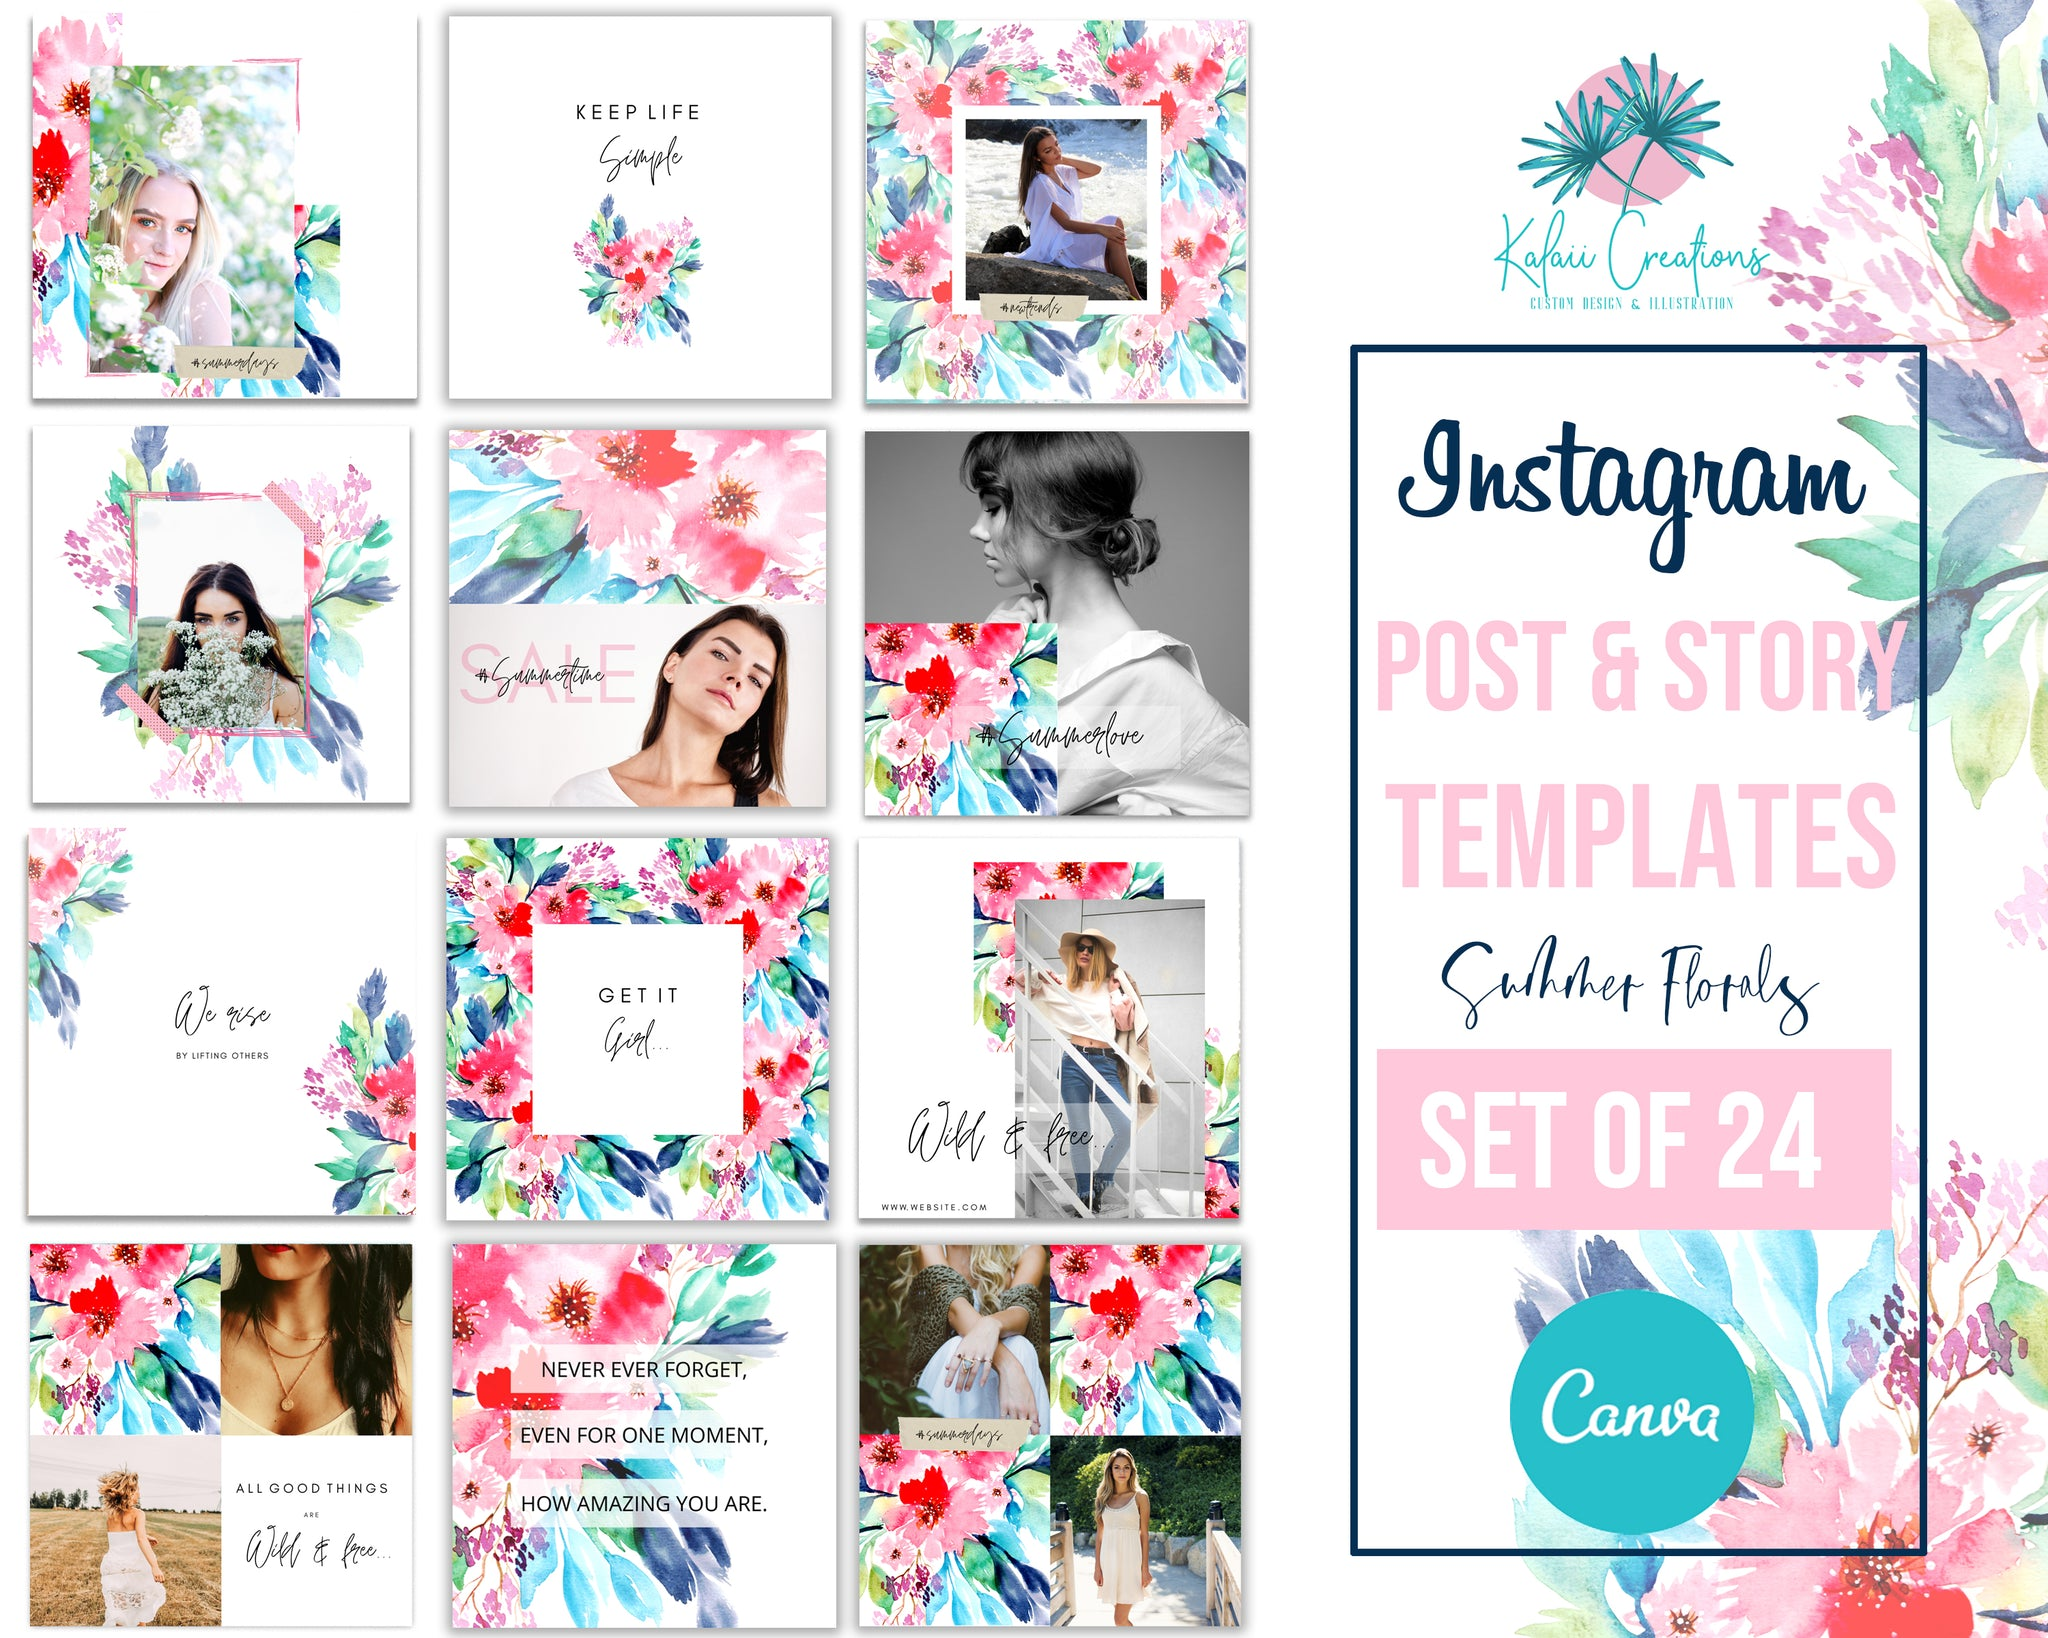 Instagram templates